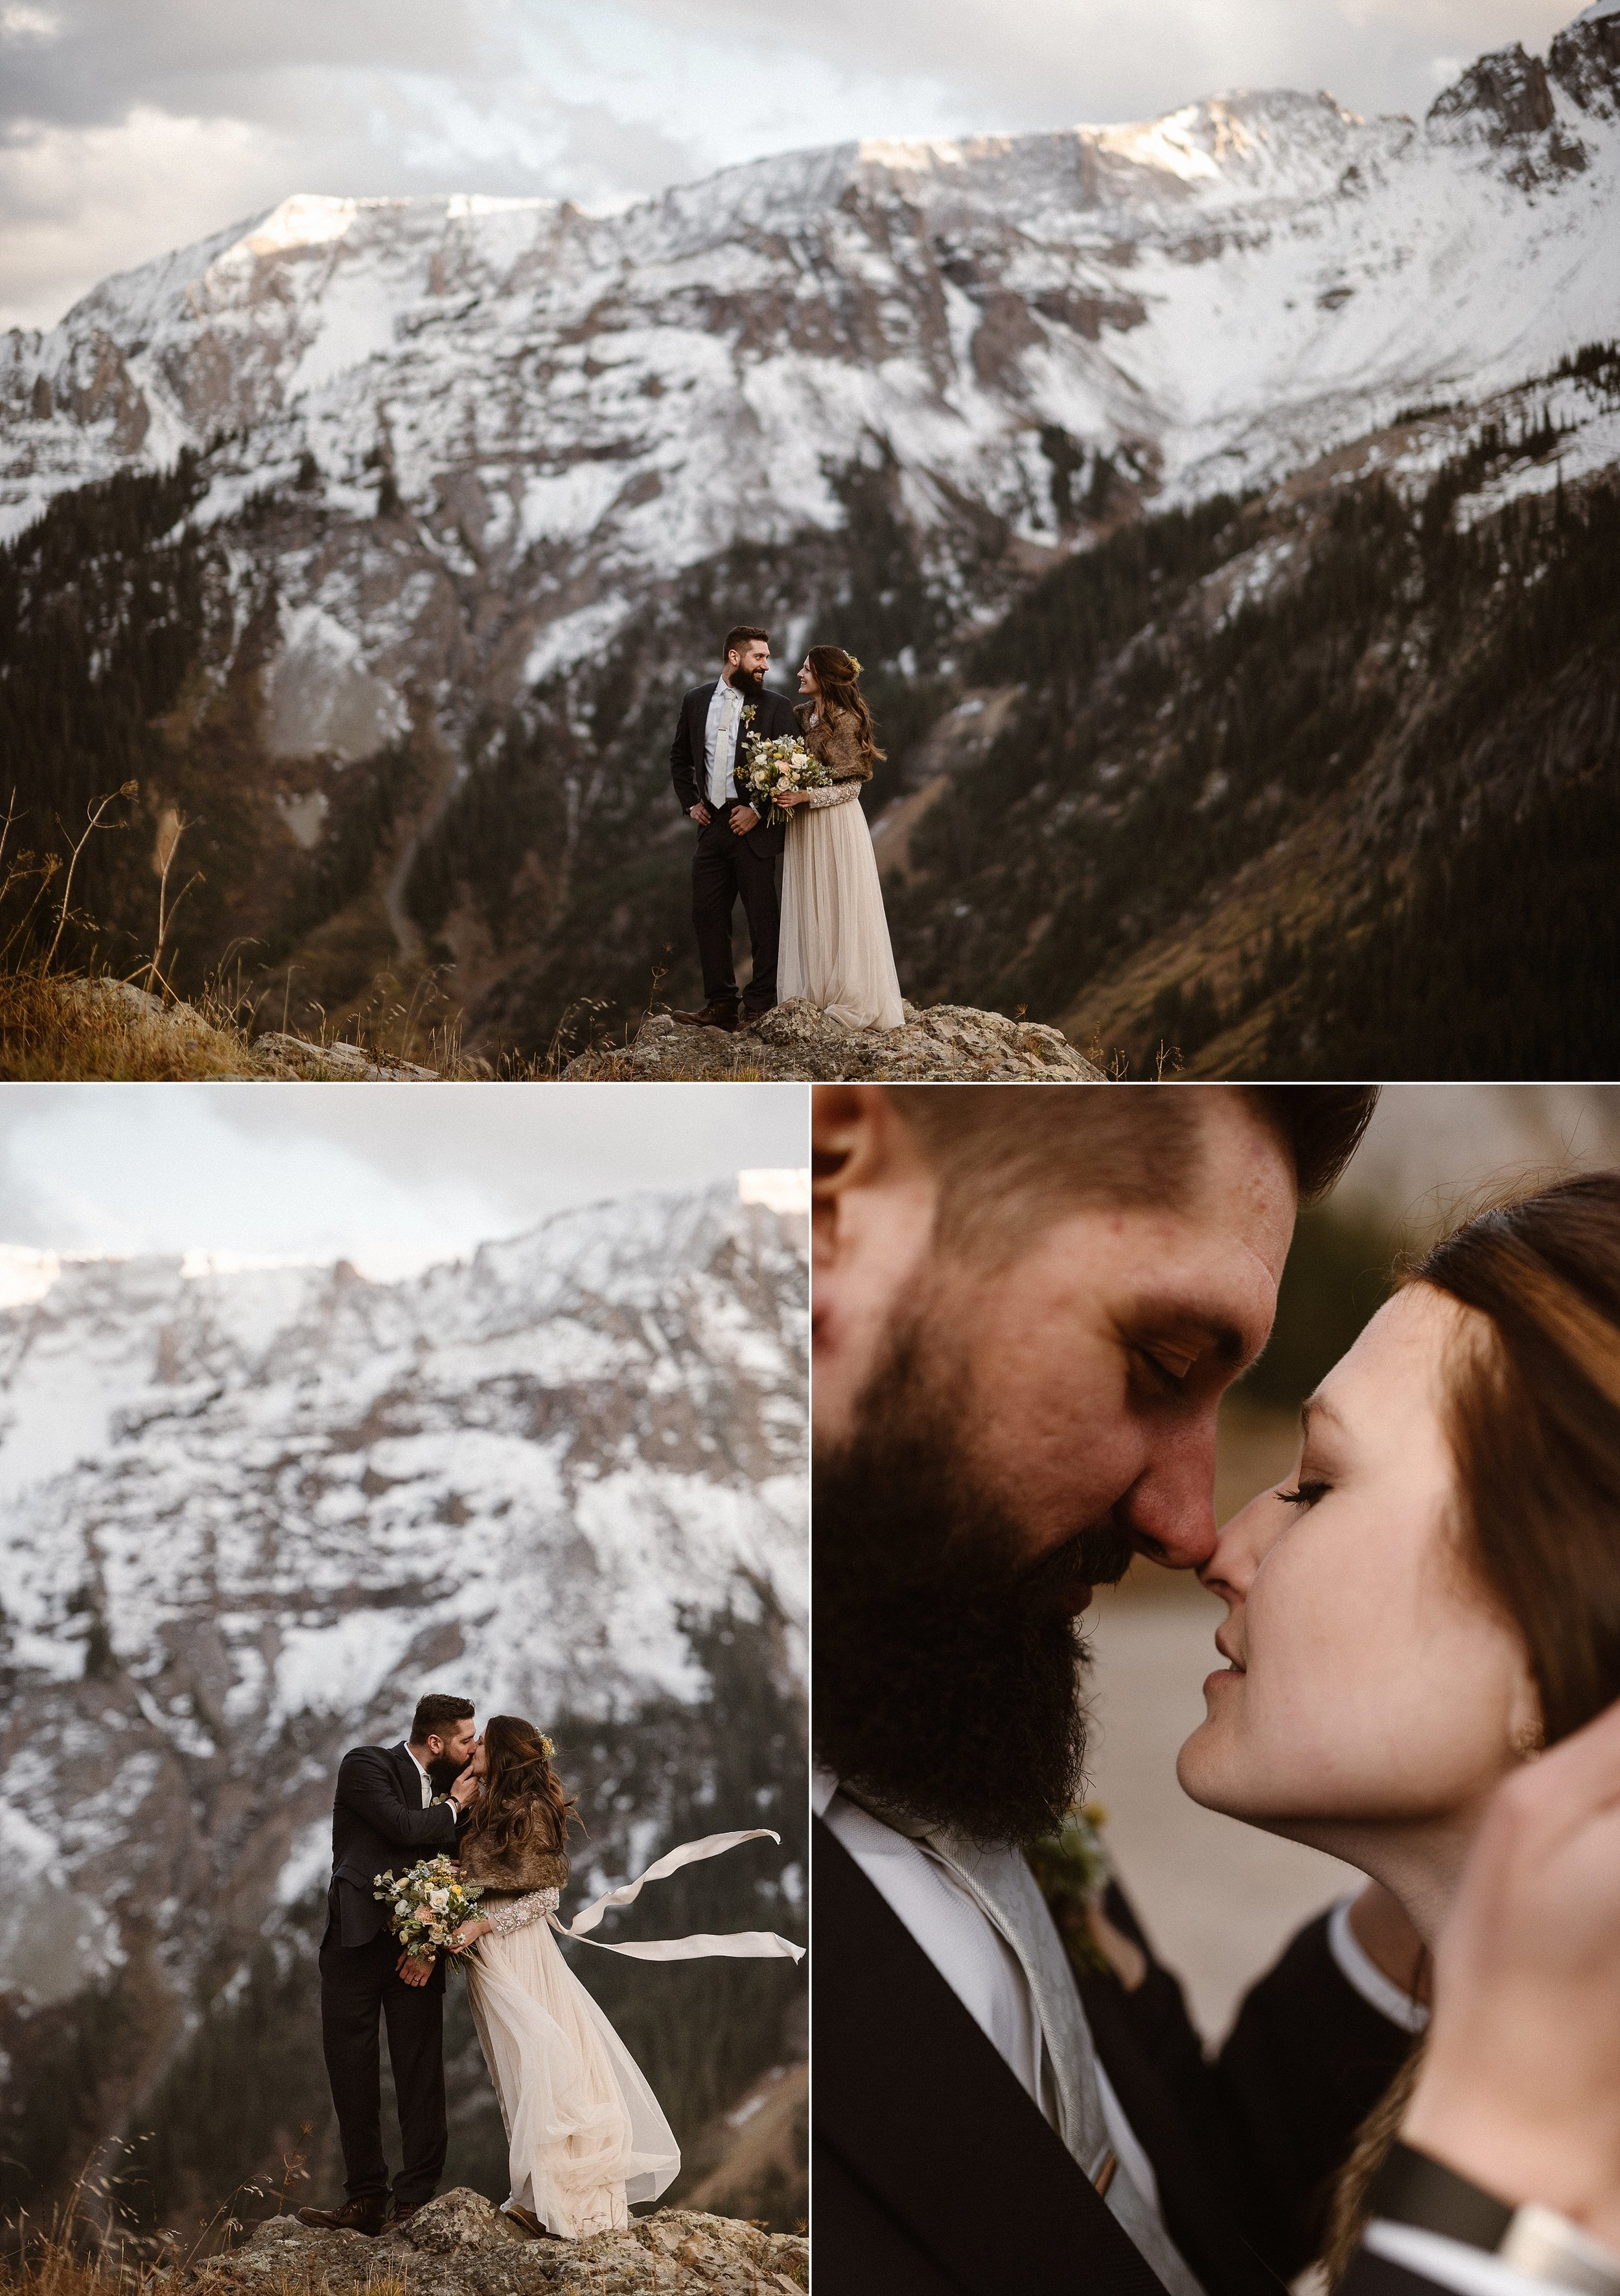 Stopping at one last rocky edge for a different view before they made their trek back down Yankee Boy Basin, Jen and Dan embraced in the high alpine winds, smiling and almost glowing with delight at their magical elopement day hiking through the mountains near Ouray, Colorado with their traveling wedding photographer Maddie Mae.